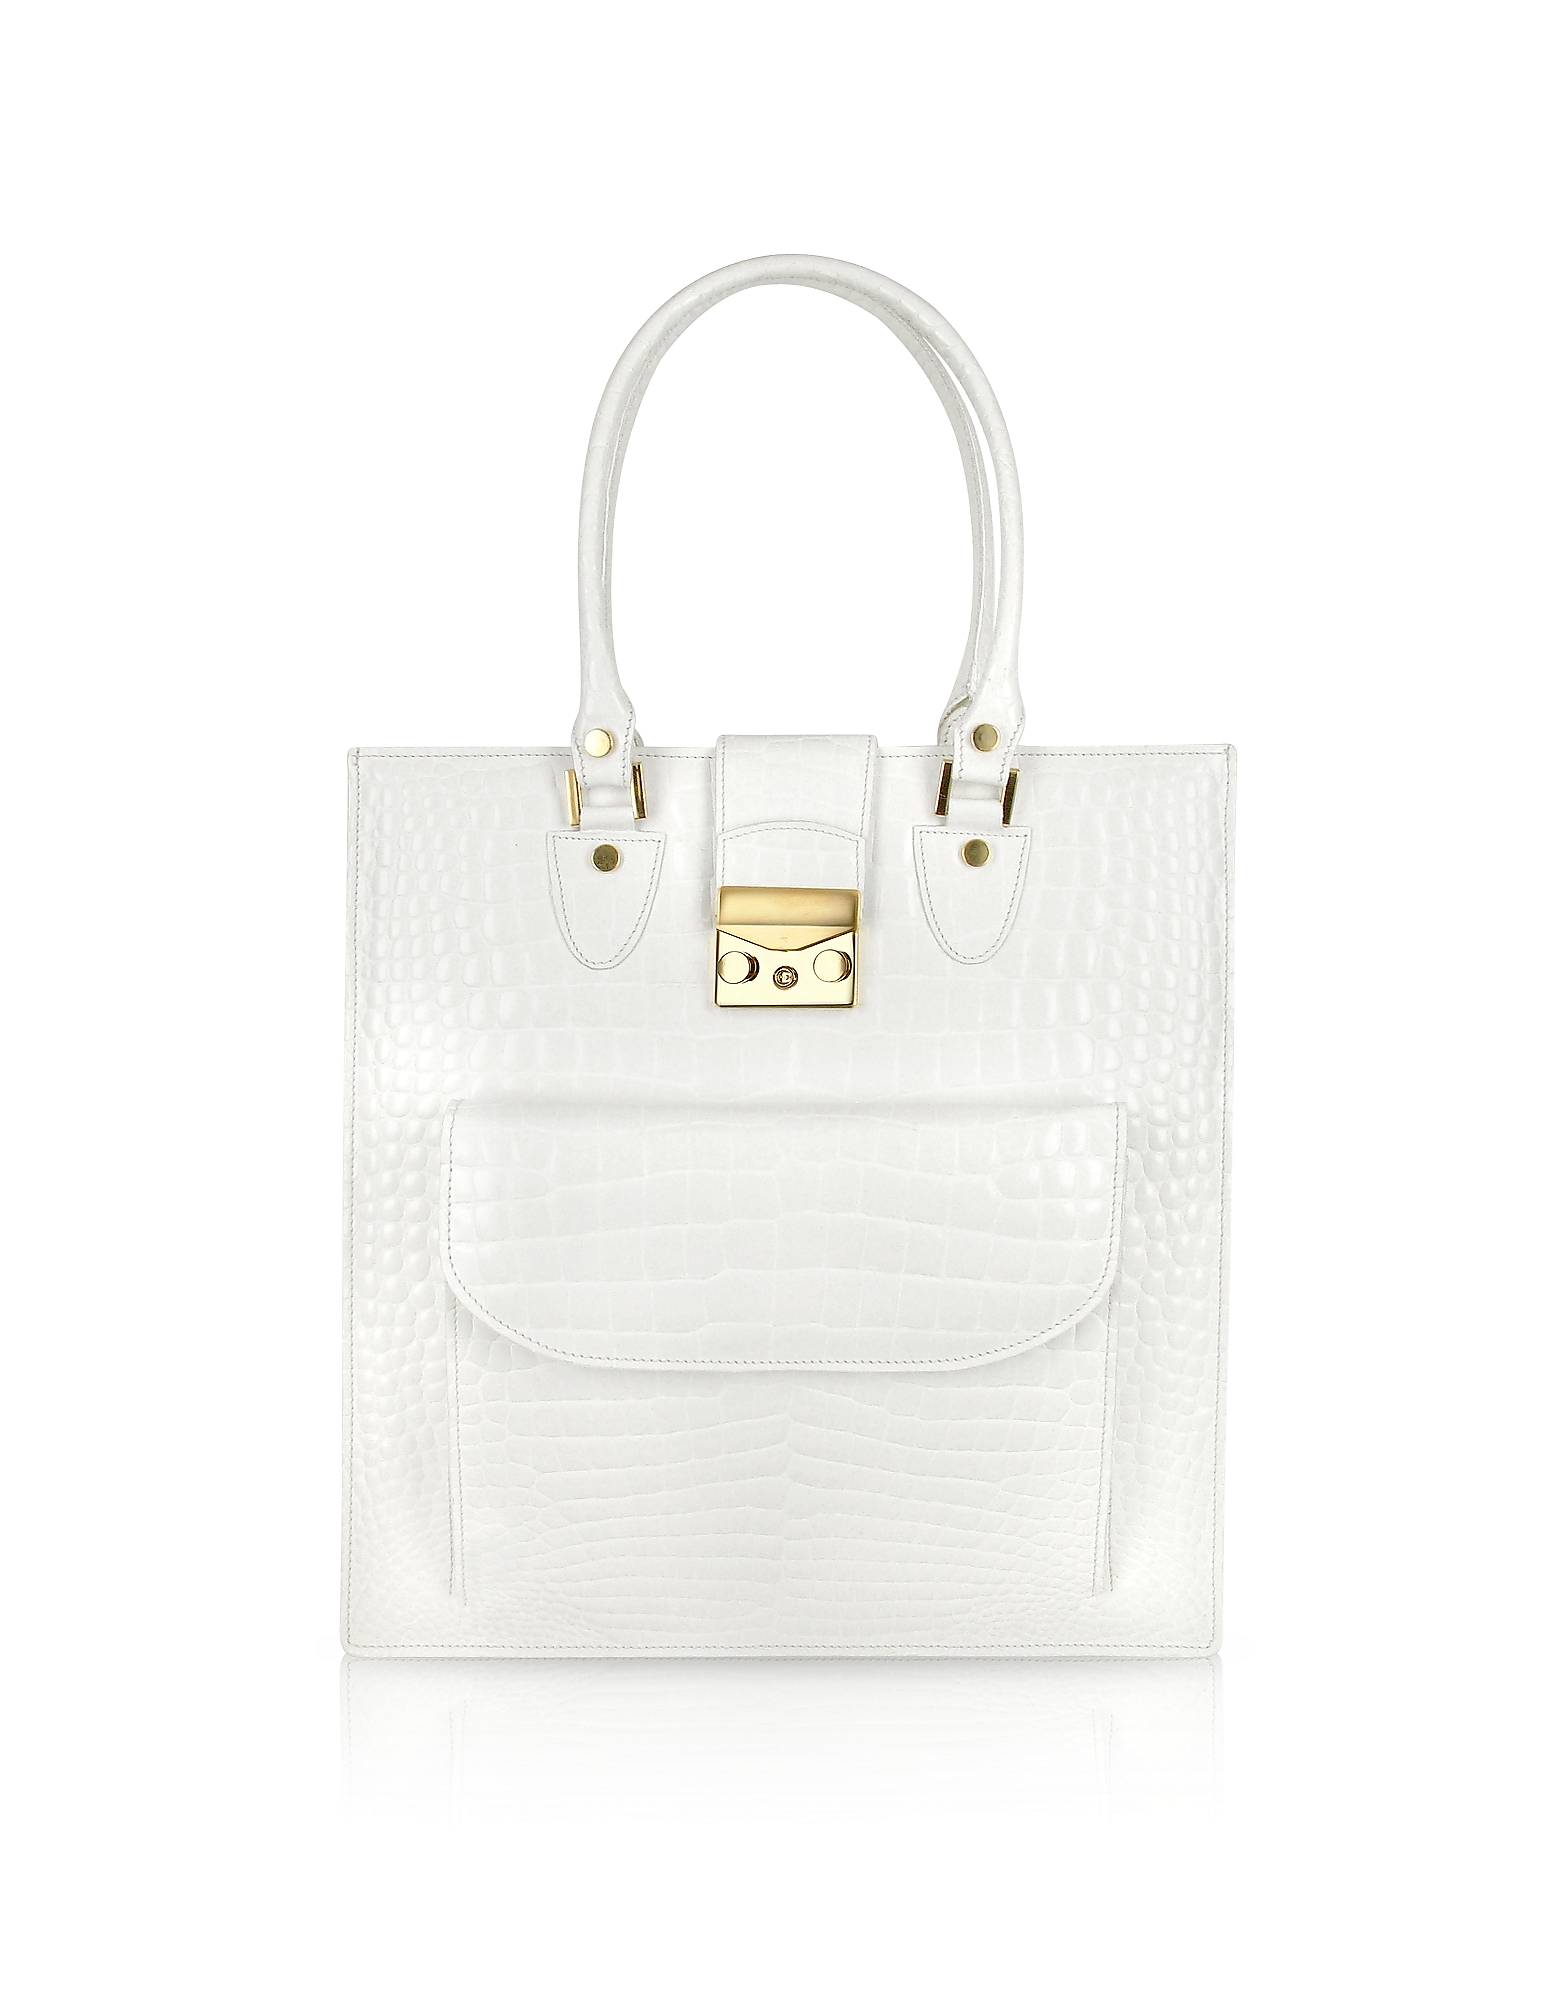 L.A.P.A. Designer Handbags, White Croco Stamped Leather Tote Bag